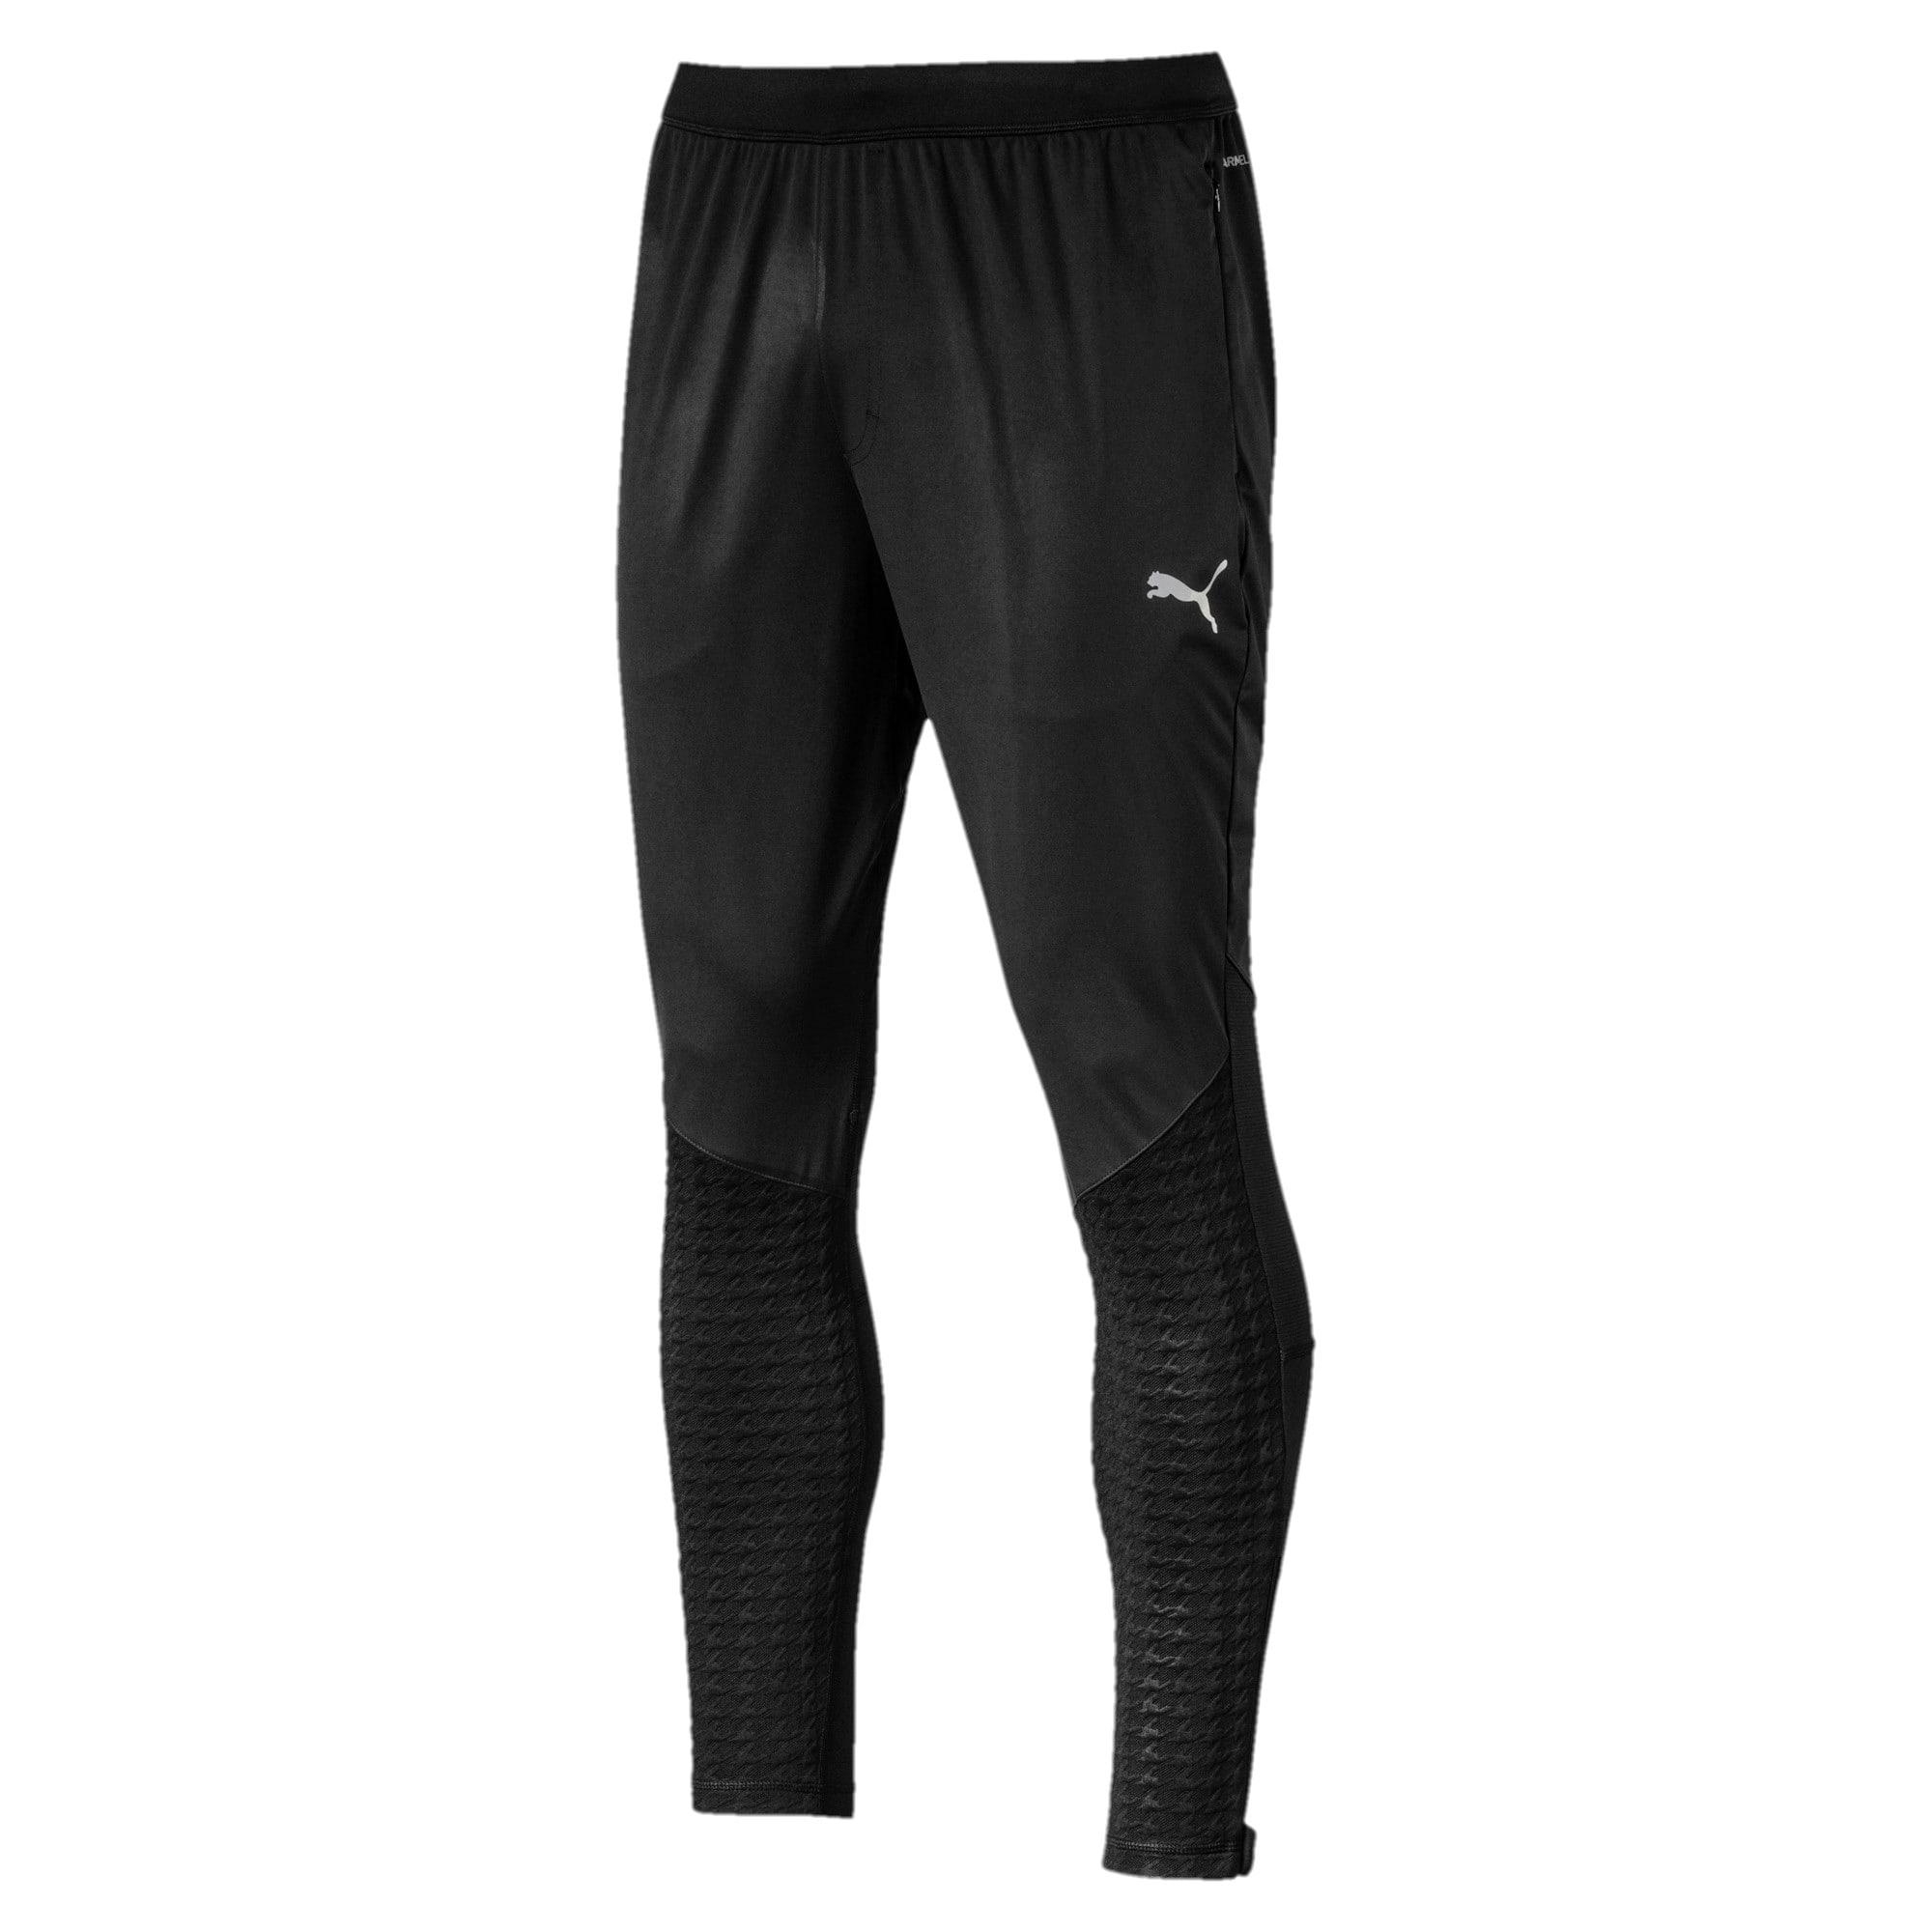 Thumbnail 4 of Get Fast Excite Herren Running Gewebte Hose, Puma Black, medium